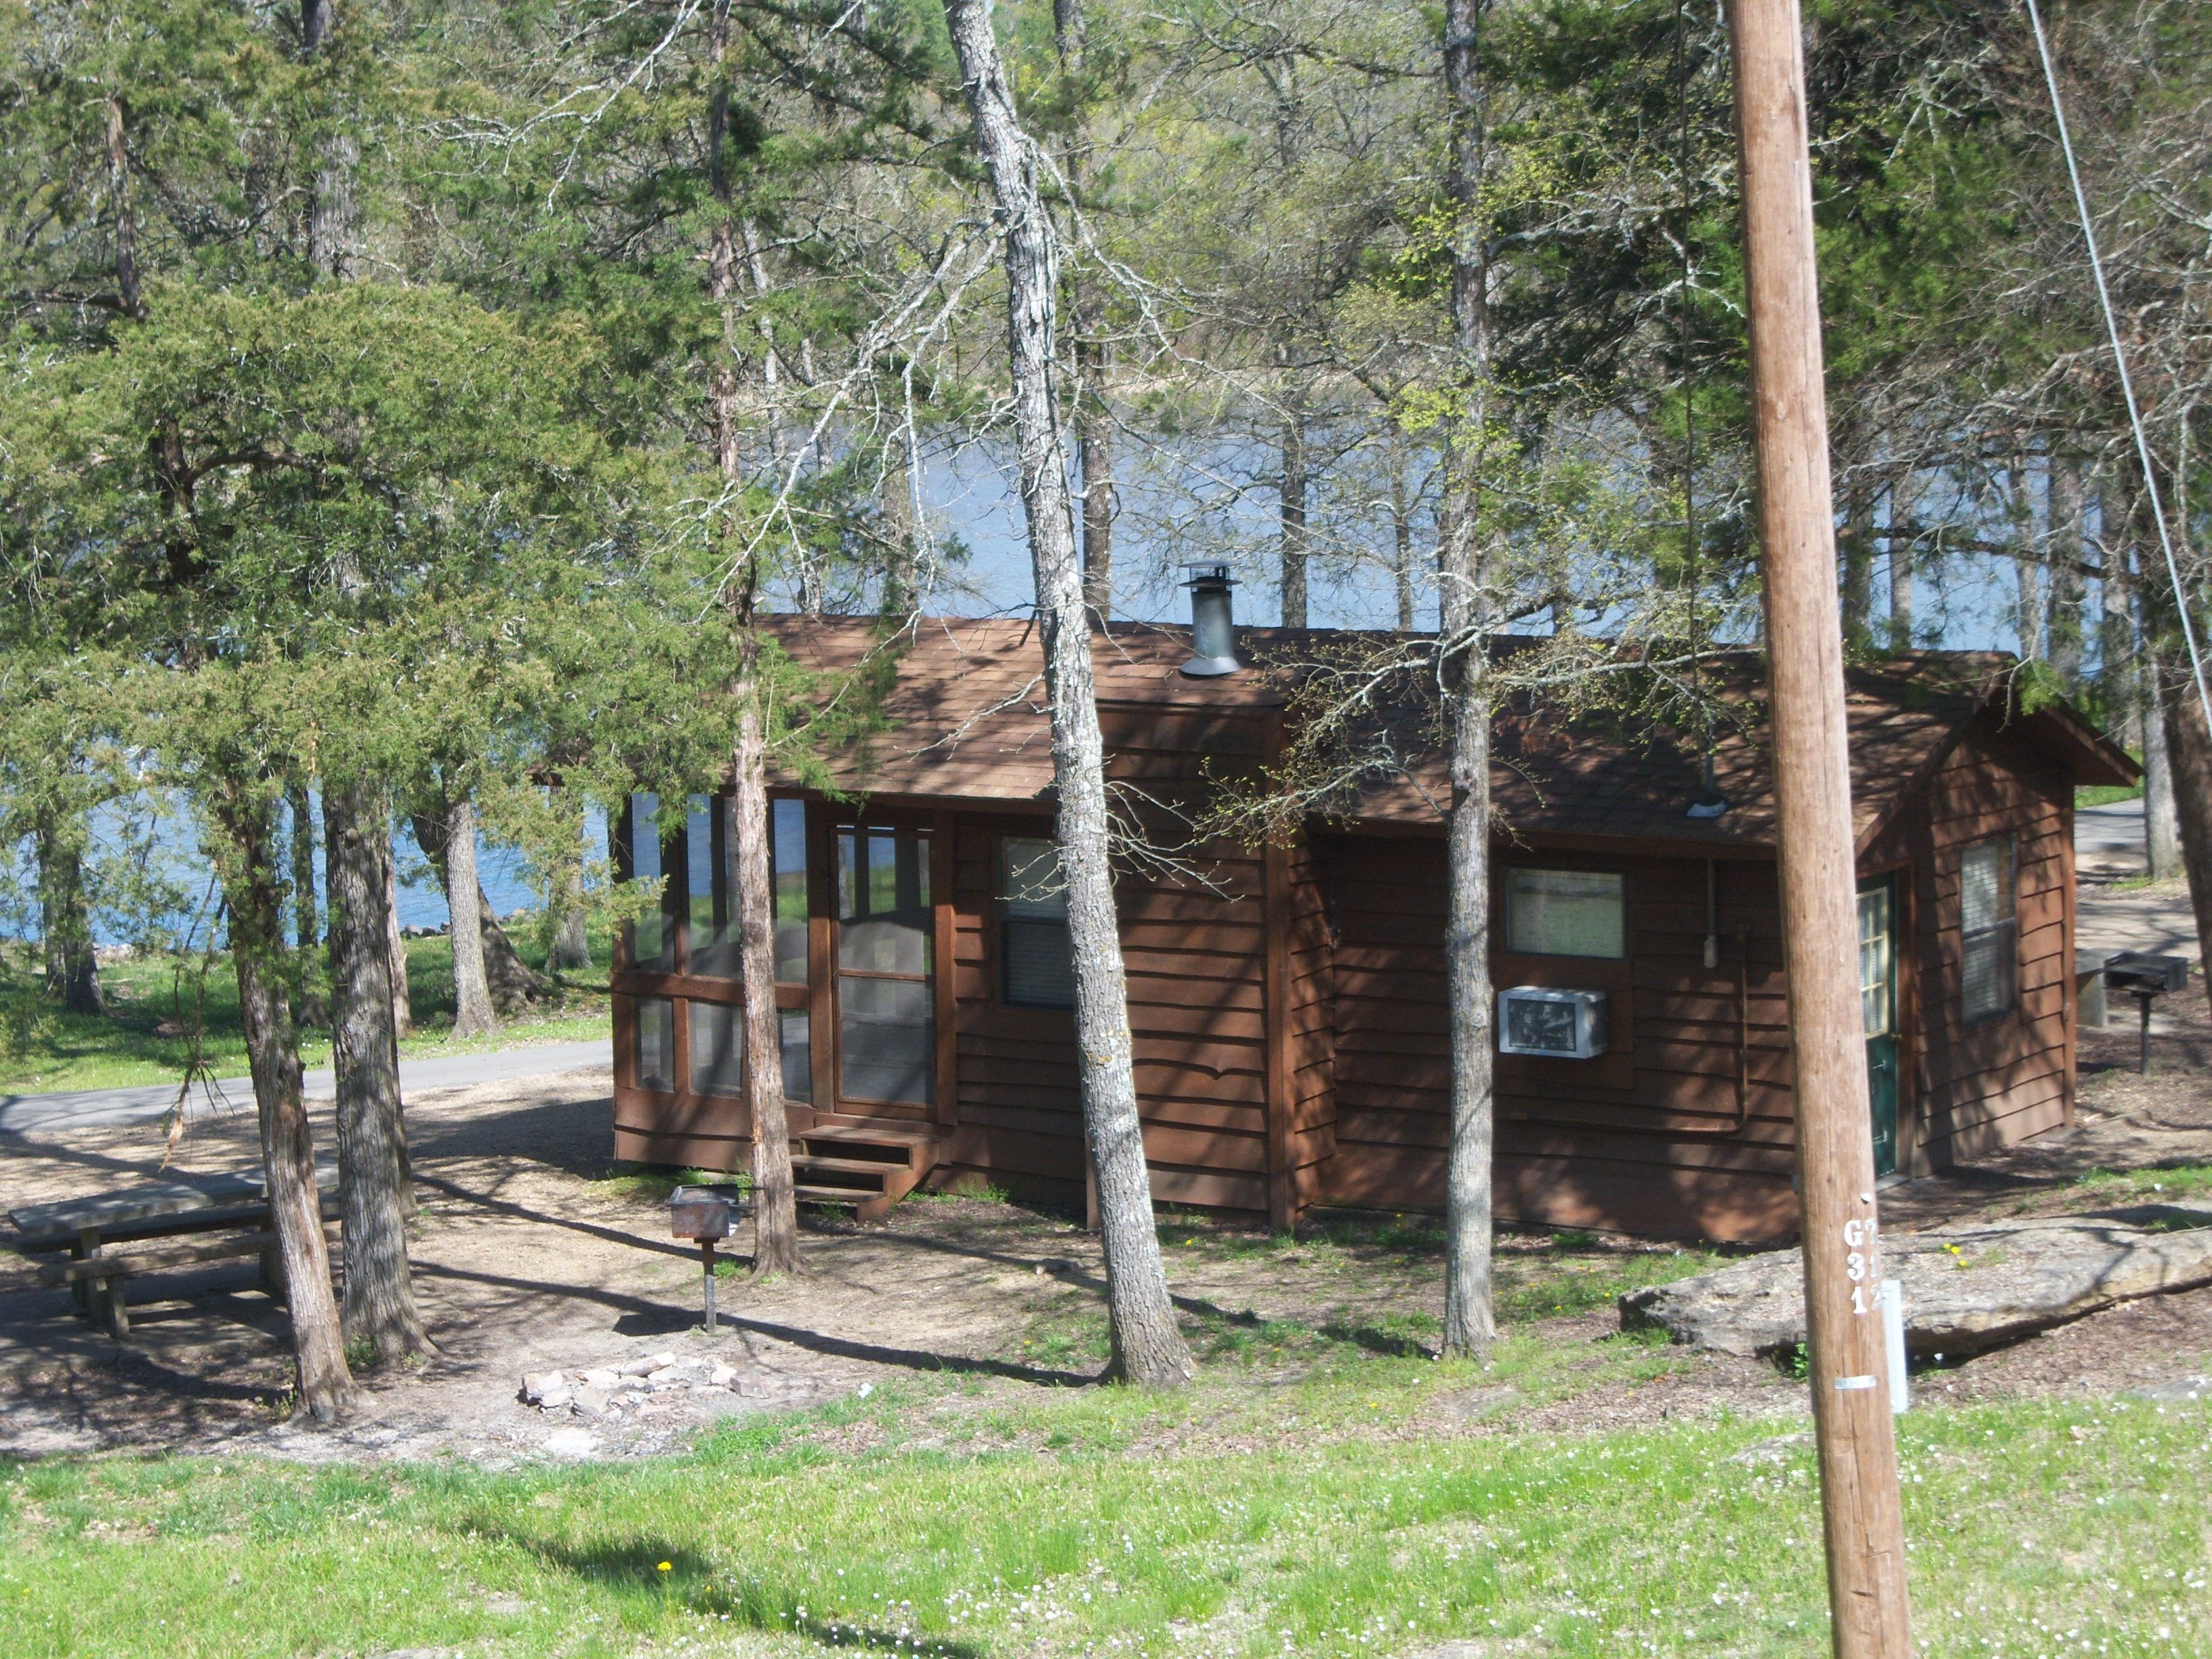 park cabin lakemurrayridingstables state cabins rentals chickasaw amenities attractions lake stables country riding murray family